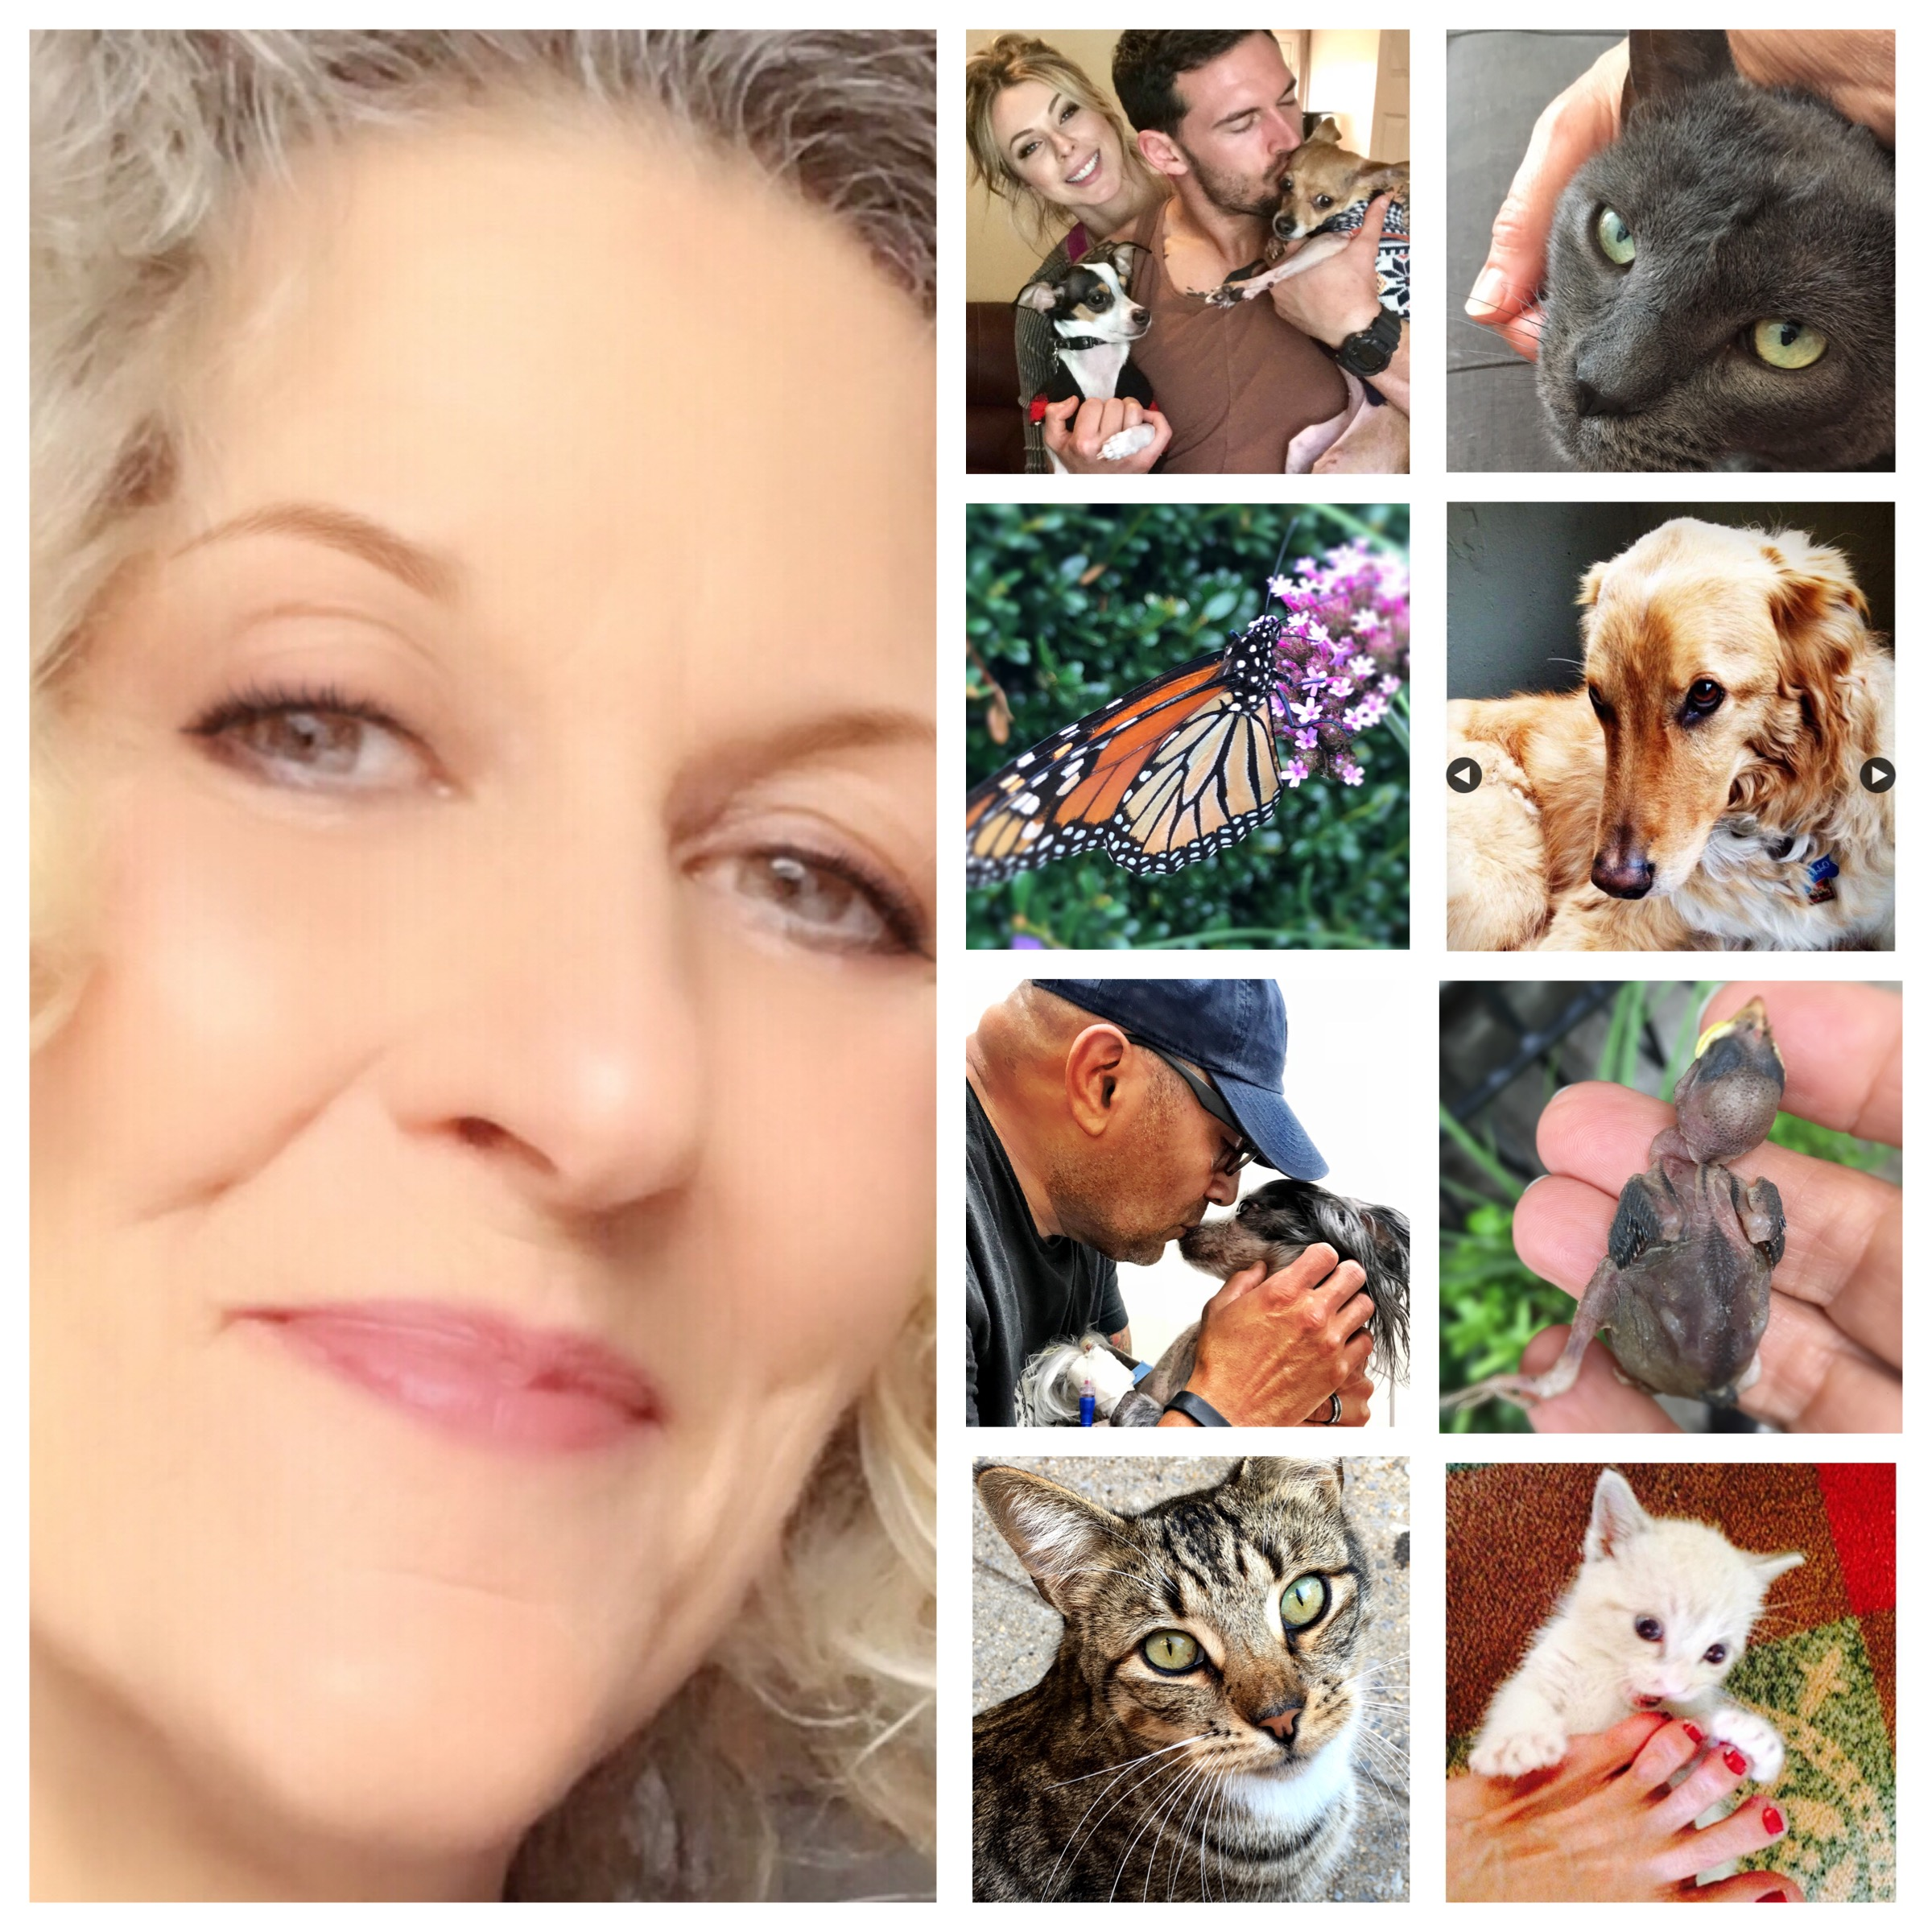 a collage that shows pet celebrant laura king surrounded by photos representing the life cycle of animals, pet adoption ceremonies and end of life ceremonies